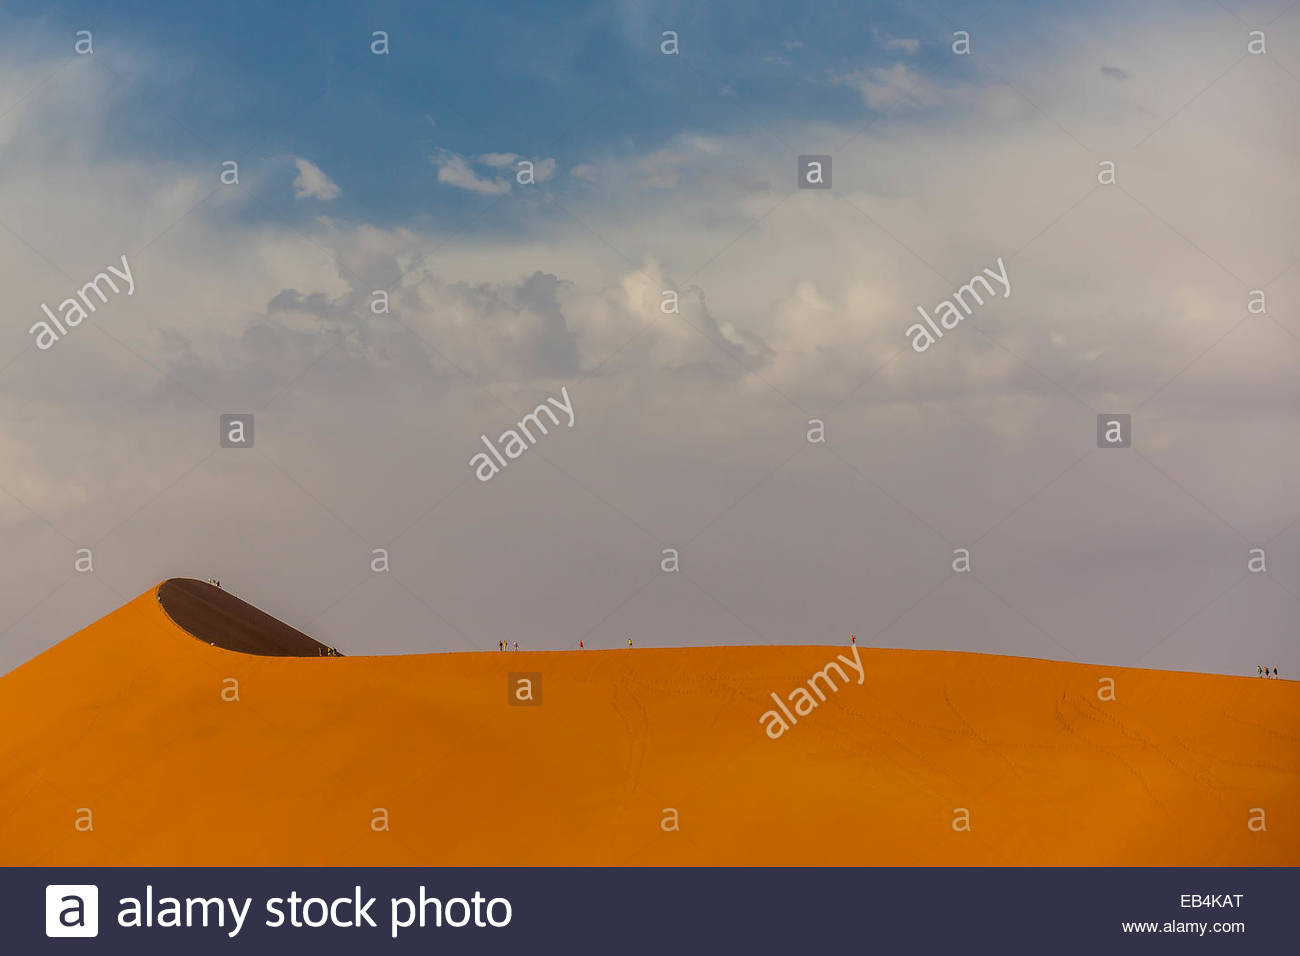 Ant-sized tourists walking along the crest of immense Dune 45 in the Namib Desert. - Stock Image